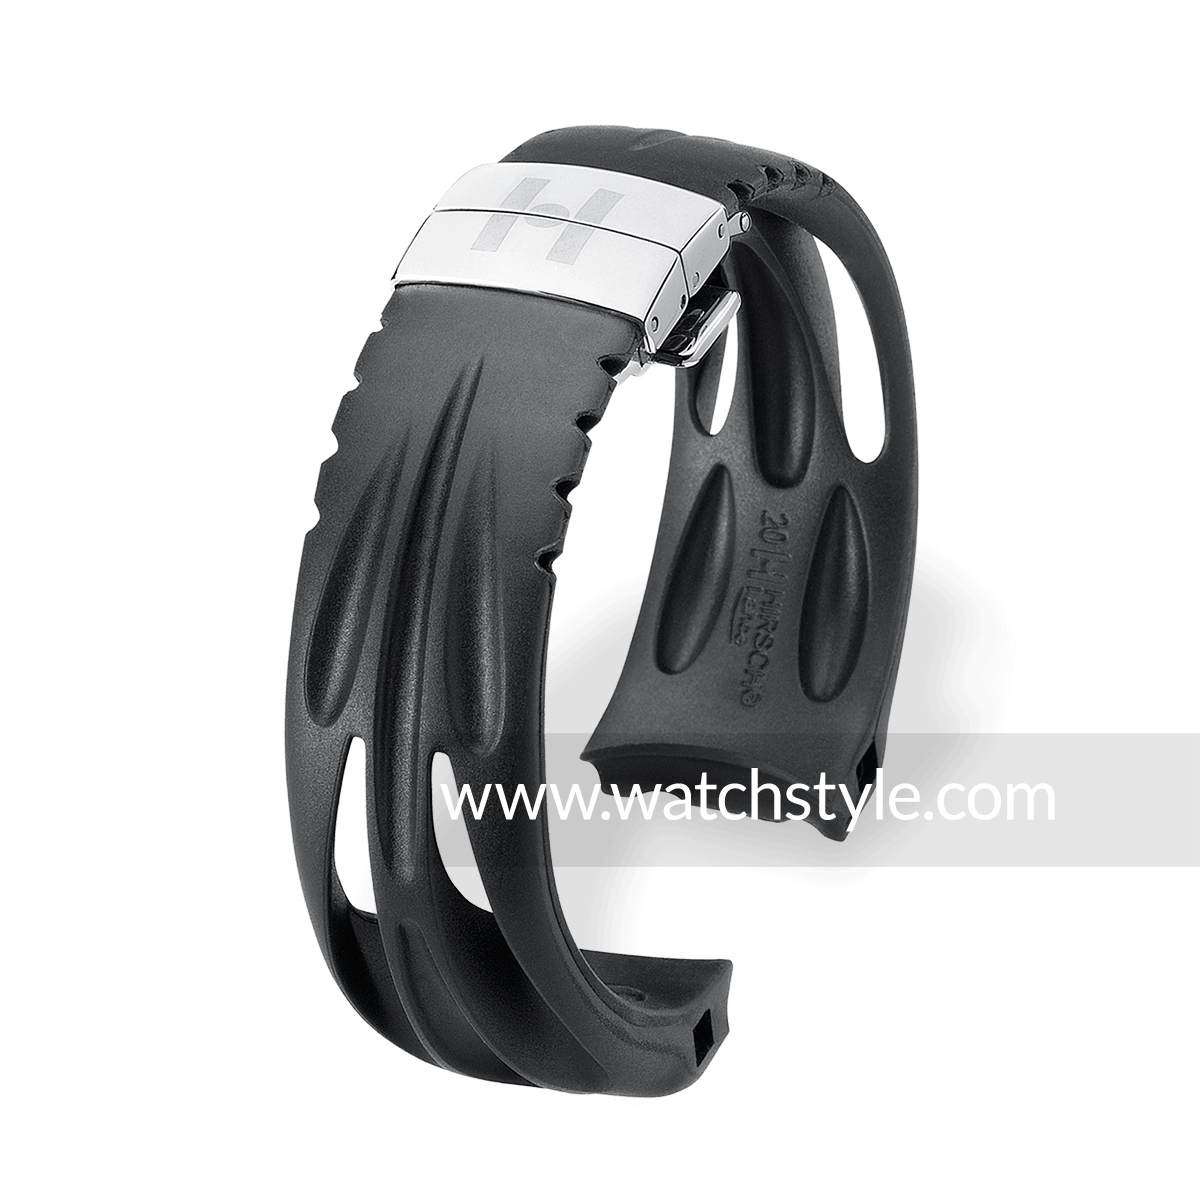 Hirsch Athlon Natural Rubber Watch Band Curved End